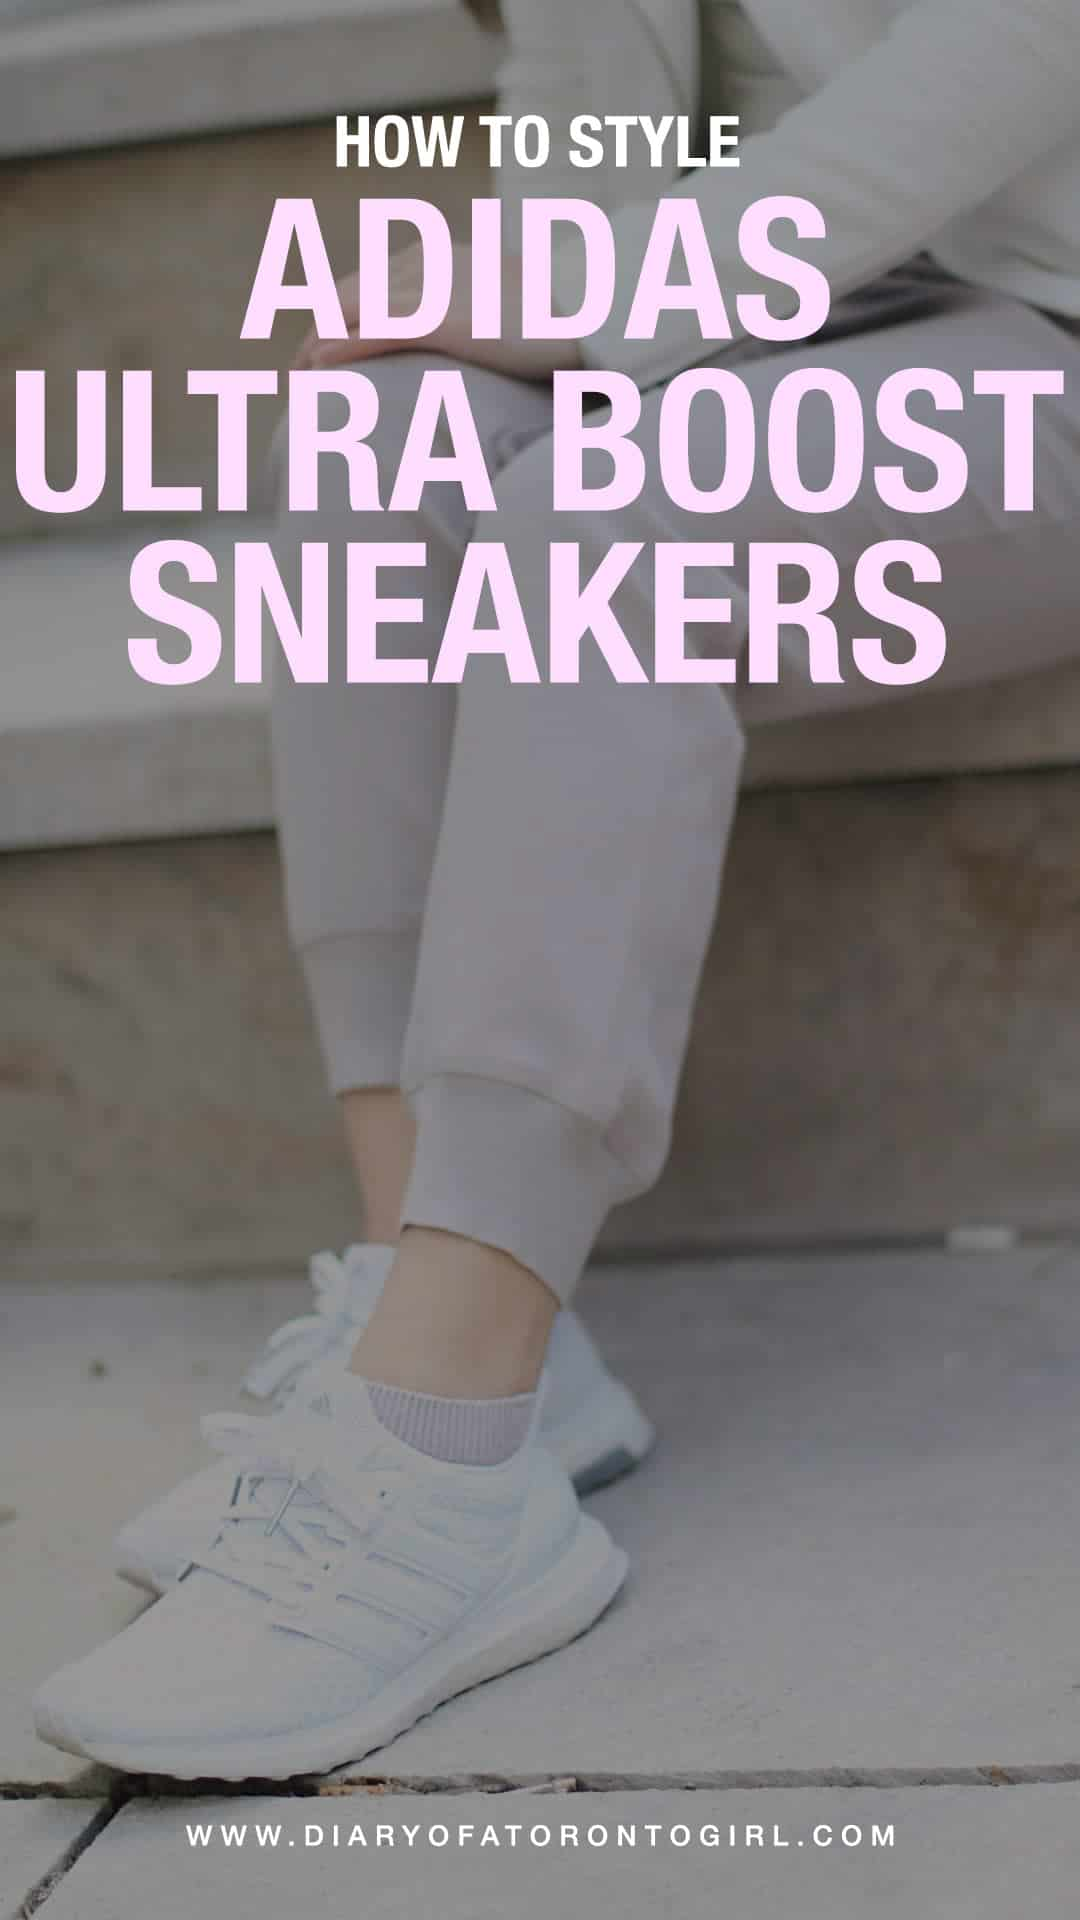 Adidas Ultra Boost sneakers are a staple shoe in my wardrobe. Here are two ways on how to style them for the spring season!